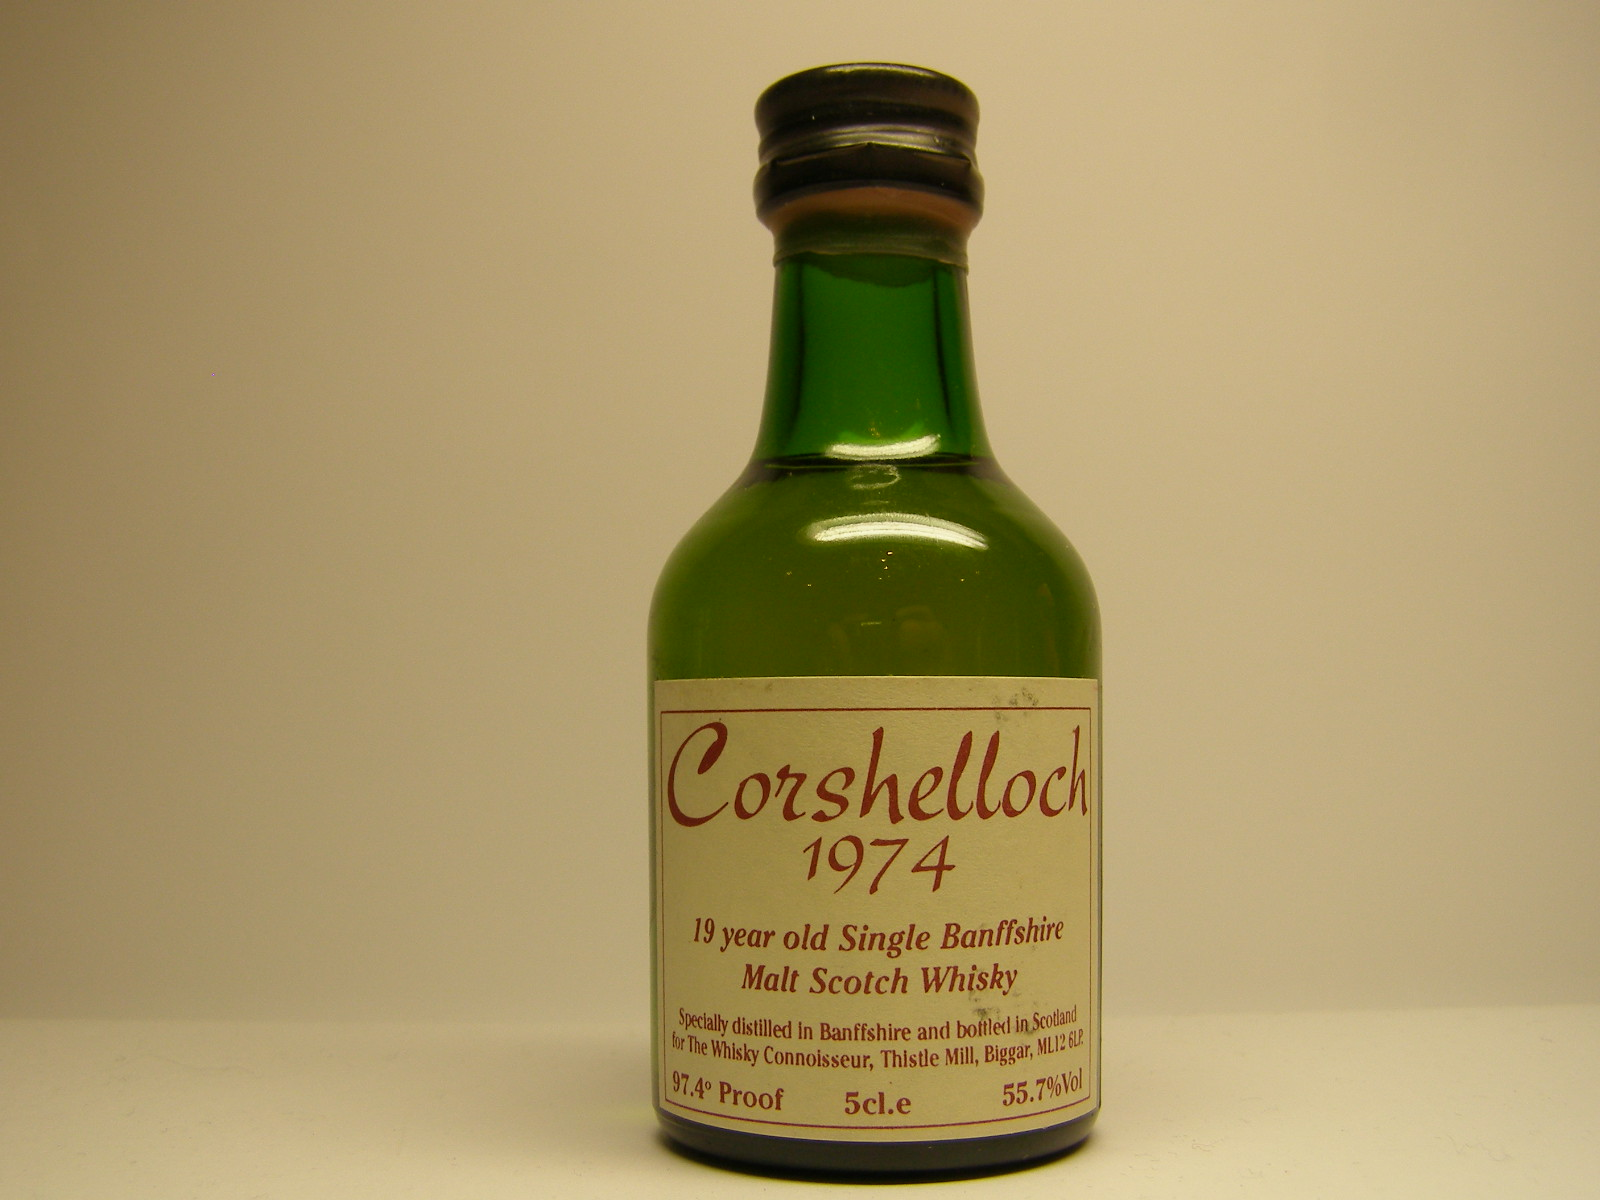 CORSHELLOCH Old SBMSW 19yo 1974 5cl.e 55,7%Vol 97,4´Proof